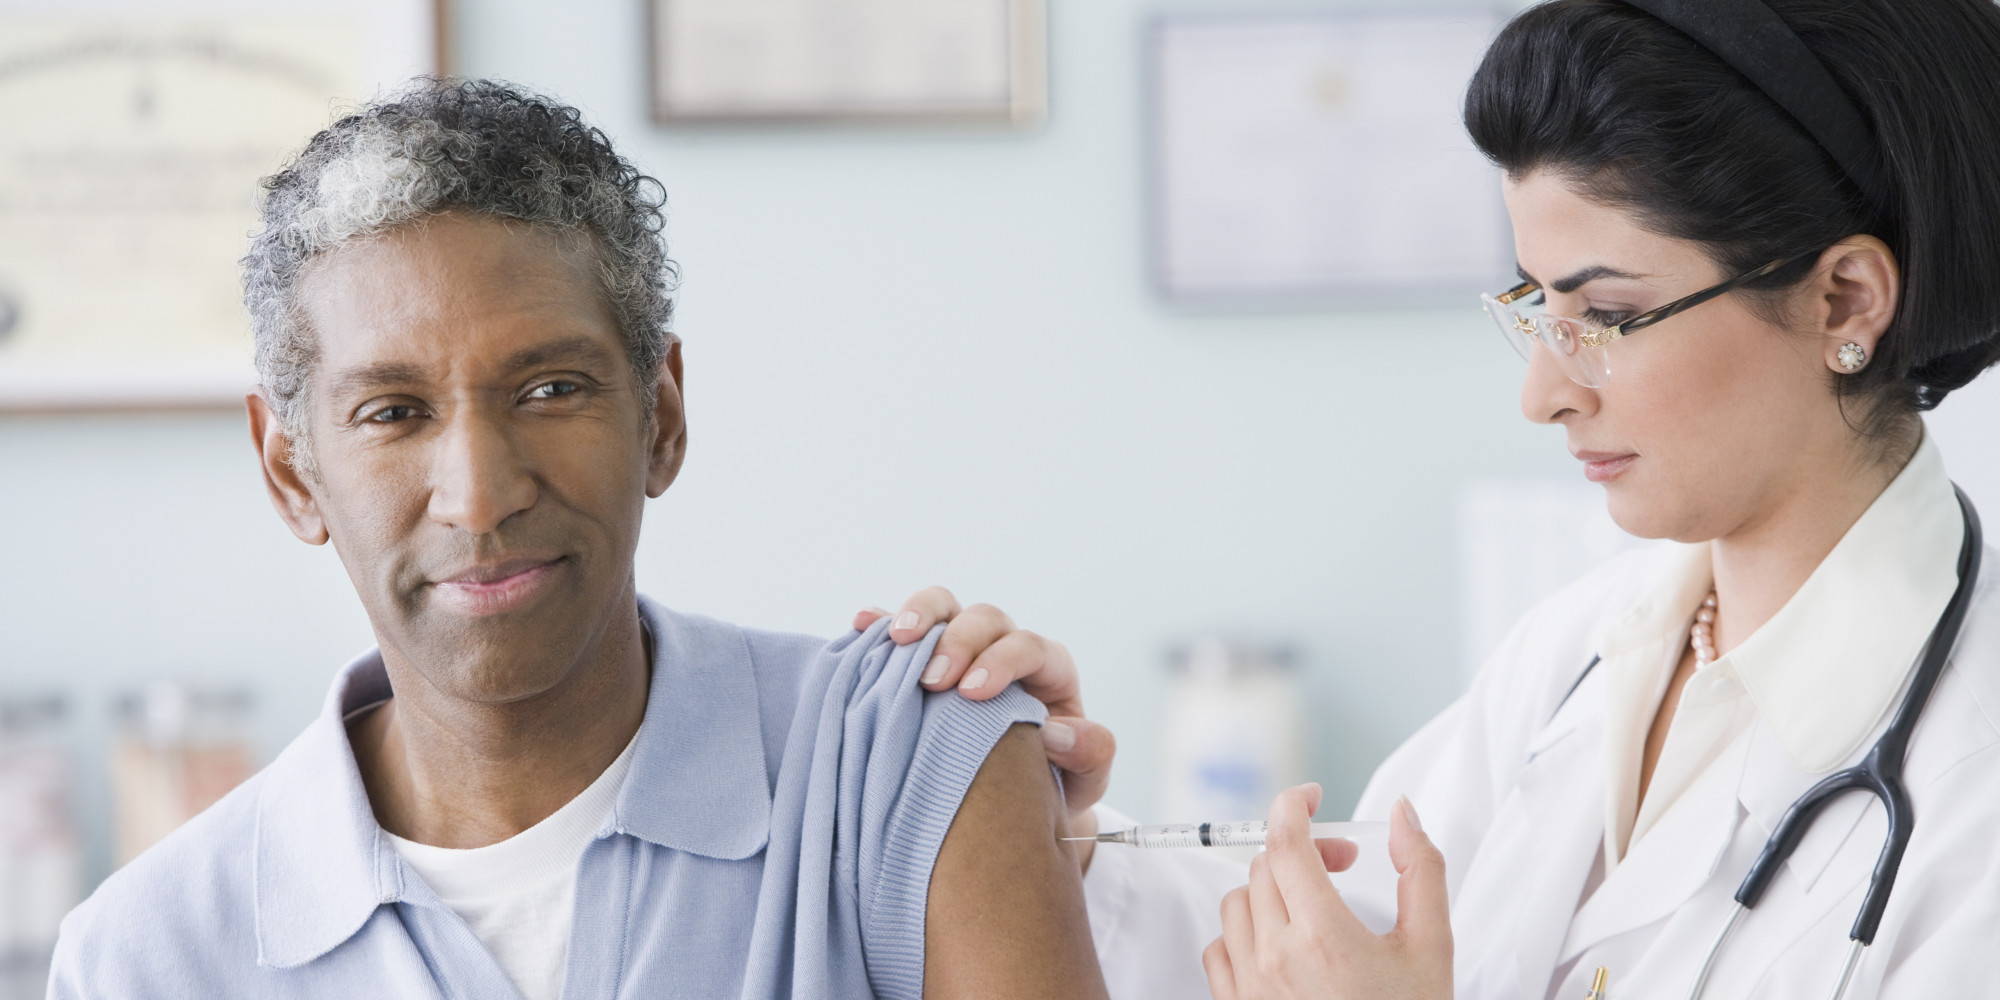 influenza vaccine for elderly and young Seniors were up to less likely to be diagnosed with flu-related illness if they resided in places where more adults under the age of 65 years old were immunized.